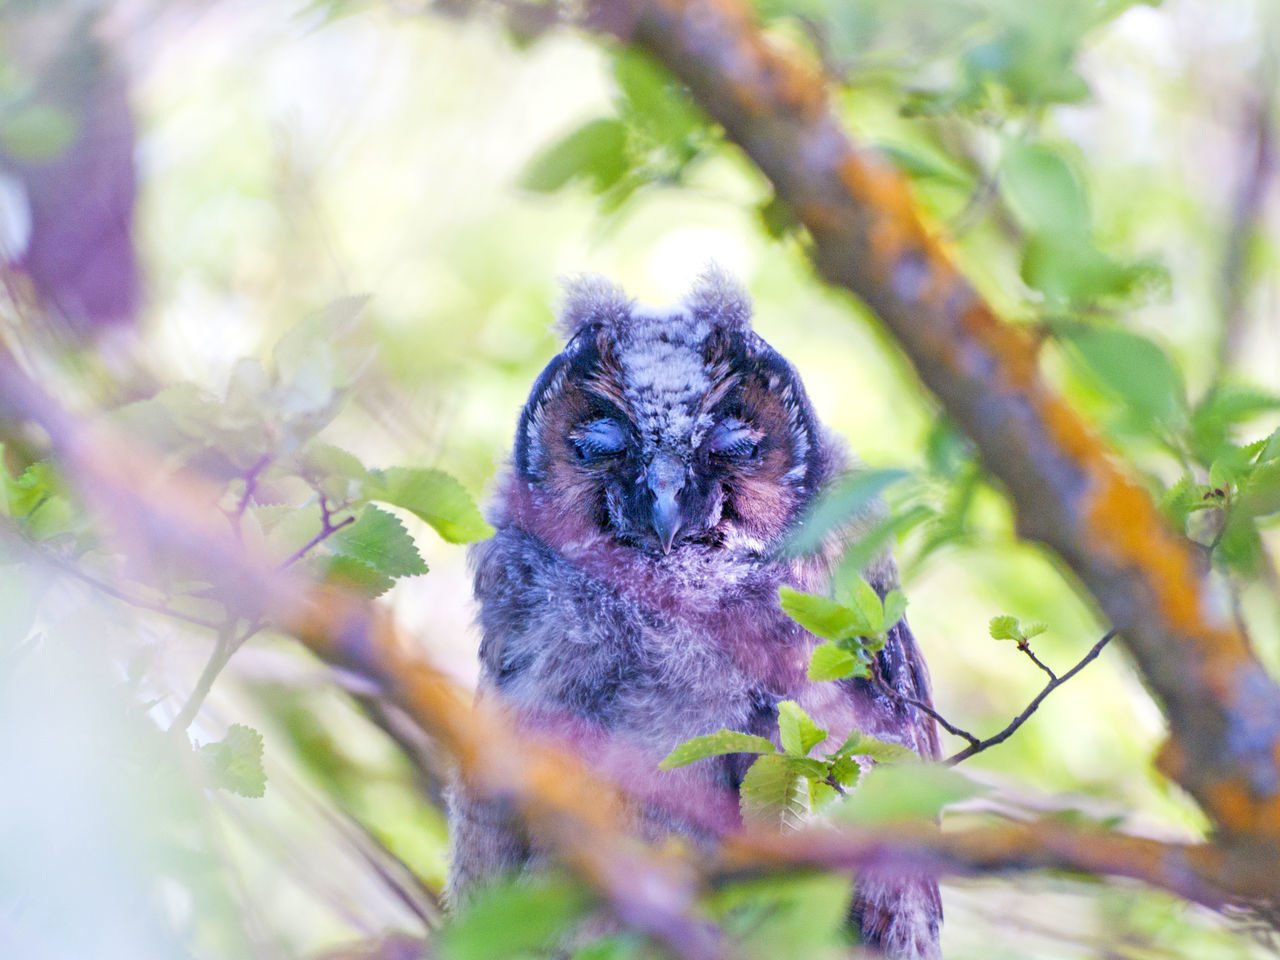 Animal Portrait Animal Themes Animals In The Wild Asio Otus Beauty In Nature Bird Bird Of Prey Birds Camouflage Camouflage Animals Close-up Day Environment Long-eared Owl Nature No People One Animal Outdoors Owl Owl Eyes Owls Perching Perching Bird Tree Wildlife